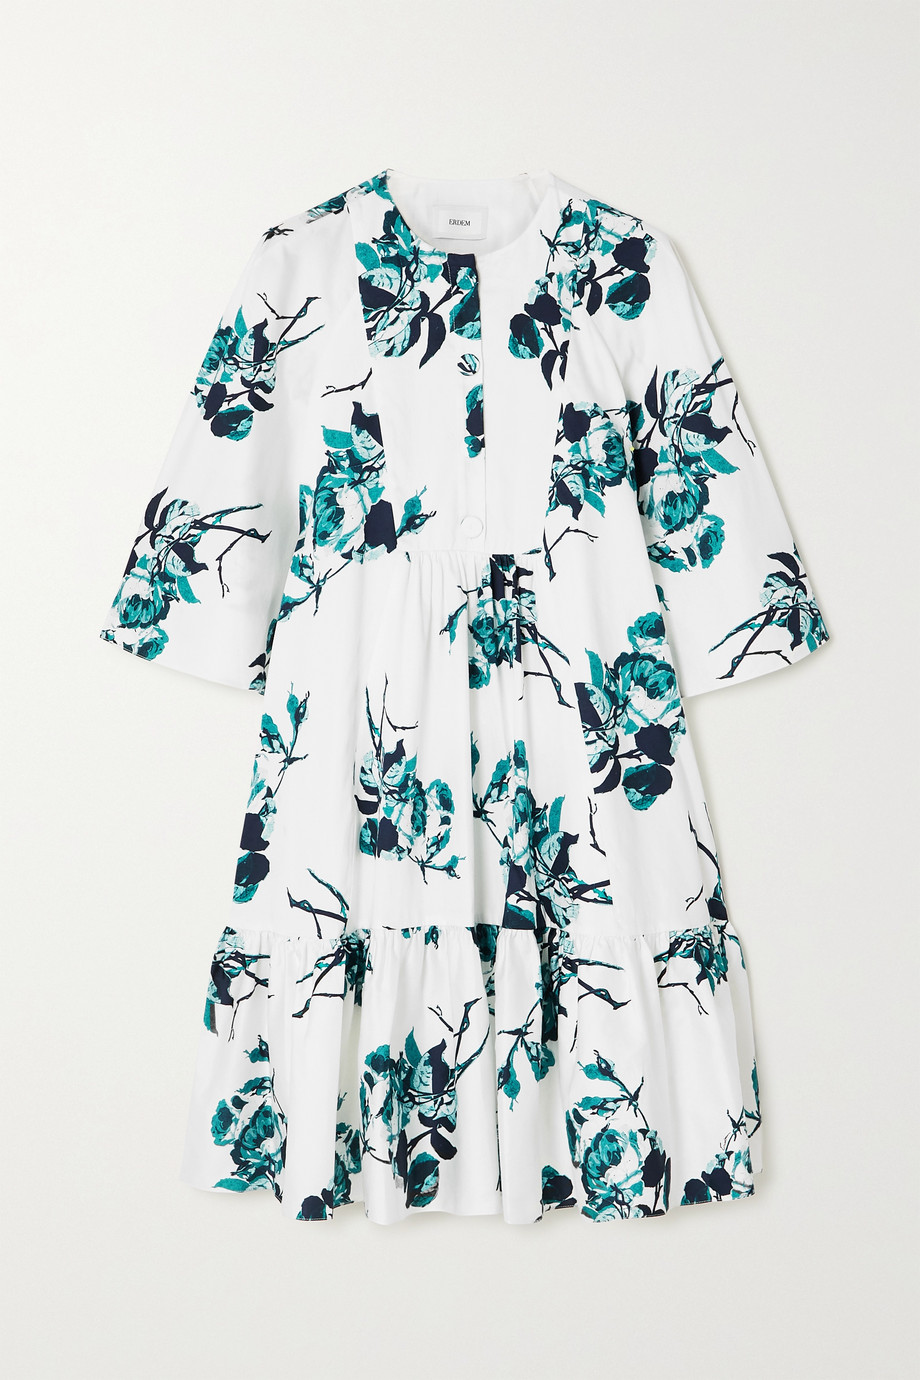 Erdem Floral-print cotton mini dress